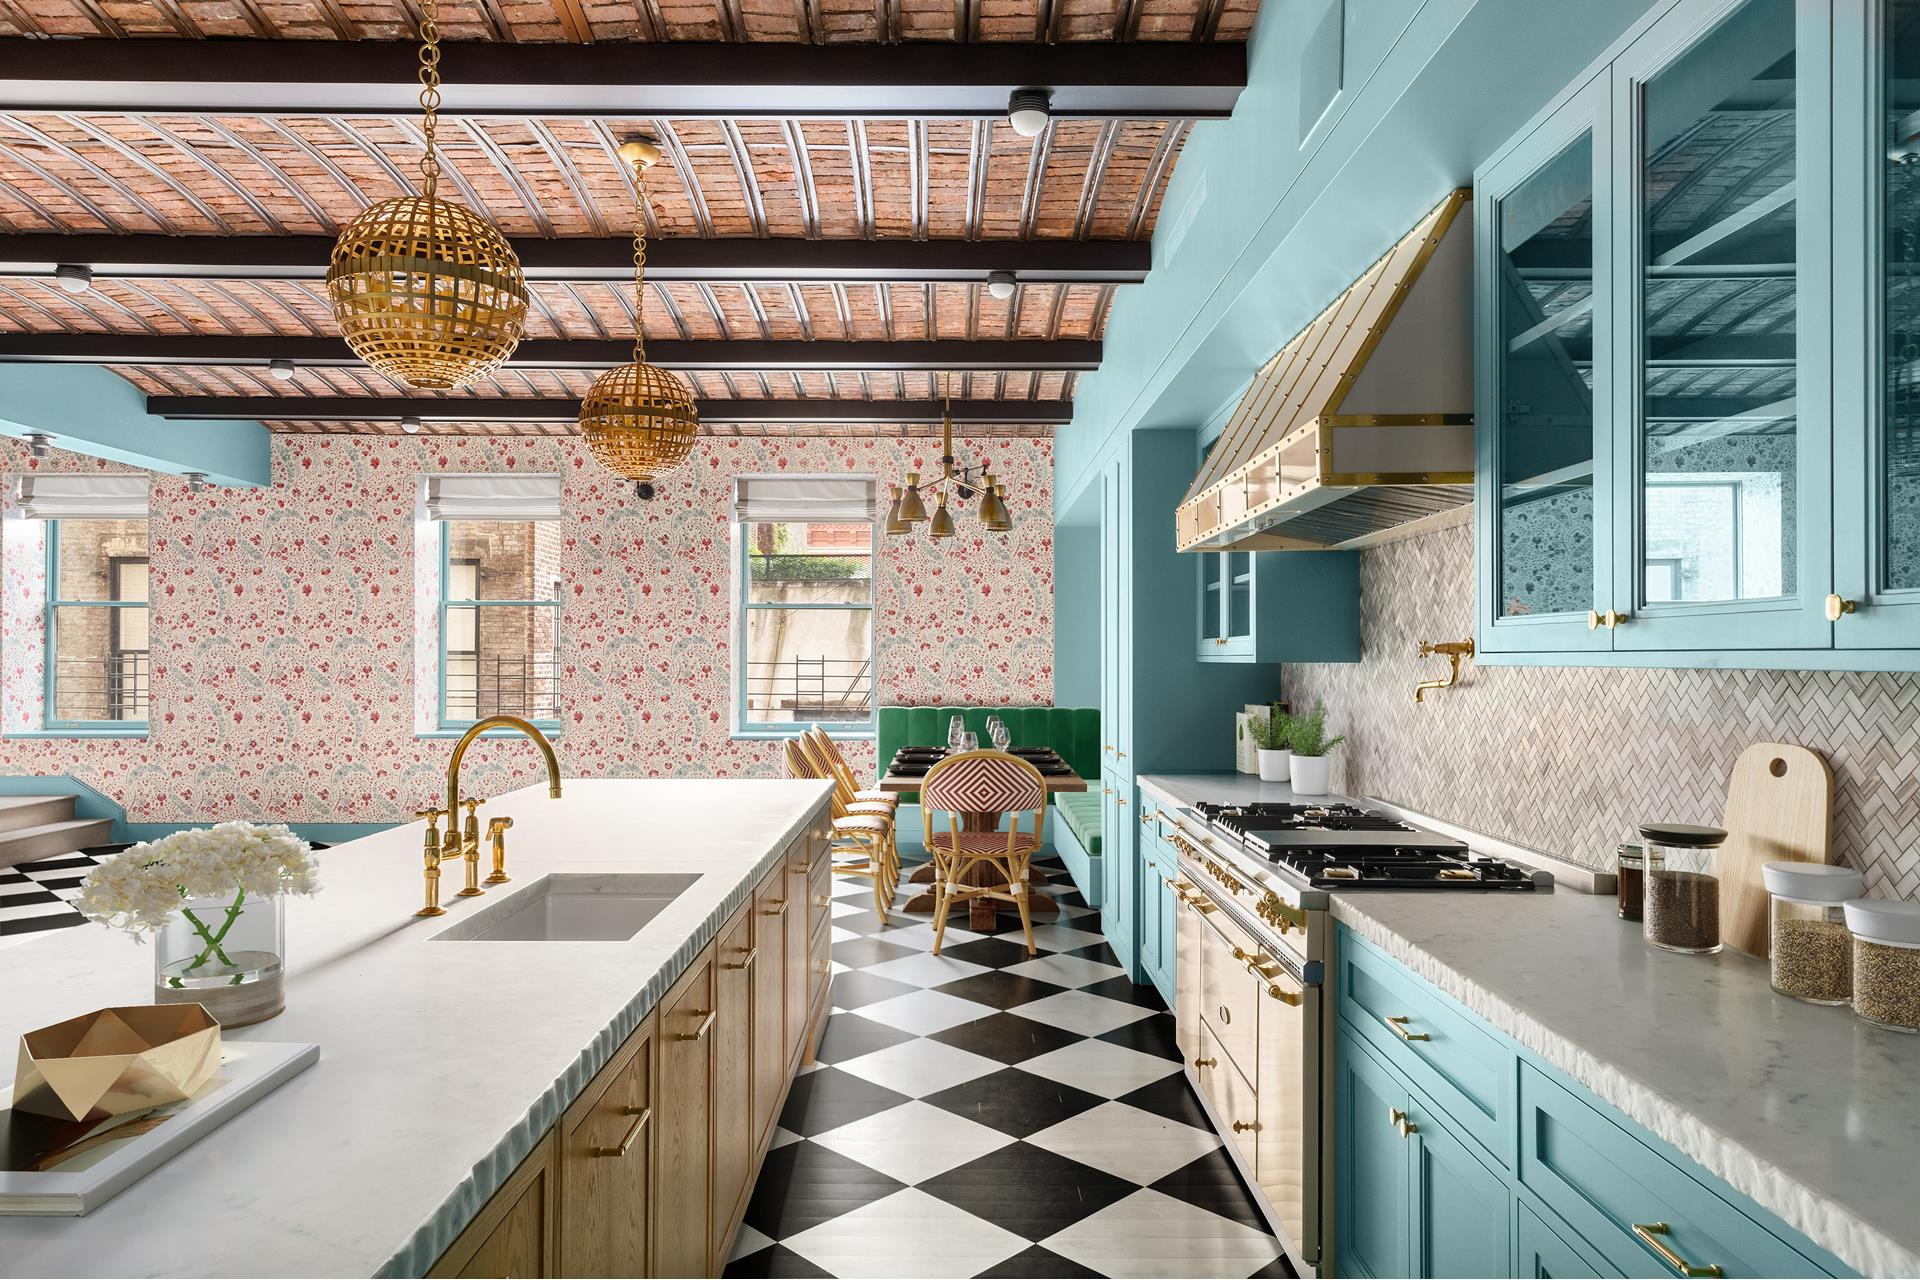 """This luxurious urban residence, in a Pre-War Beaux Art building in a very special part of SoHo, was designed by the internationally recognized interior designer Ken Fulk, a member of the Architectural Digest 100. Described by Fulk as """"Part city townhouse   and part country manor house,"""" the impressively scaled, 6,014 square foot duplex provides an ultra-rare opportunity to own such a sprawling apartment in the epicenter of SoHo.    Replete with historical details, such as original barrel vaulted ceilings, the home has two massive, open-plan living spaces, connected by an elegant internal staircase. Entries and service entries are provided on both levels. As Fulk says, """"Warm wood tones   with accents of brass, glass and marble complement the industrial history of the neighborhood."""" On the lower level, the great room offers an informal living area and eat-in kitchen, with warm, wirebrushed oak millwork, wide plank floors, and richly hued botanical   fabrics. On this level, three family bedrooms have light, happy tones, each with a private bath and copious closet space. An additional full bath is offered for guest use, and a laundry room is also provided. The upstairs level is more urbane, or """"citified""""   as Fulk describes it, with chevron floors and Art Deco detailing in deep green lacquered wood paneling with brass and glass accents. This is the more formal level, with room for formal living and dining areas, with a built-in marble swathed buffet. A wet bar   is provided near a second, enclosed kitchen, provided for ease of entertaining. A powder room is also provided for convenience. Behind the staircase, the master bedroom offers a luxurious walk-in closet and large bath. An adjoining bedroom, with its own walk-in   closet and bath, can also be used as a private sitting room or office.    Harmoniously blending the boutique nature of old-world Soho expected in New York, 151 Wooster is one of Soho's premier locations. With no shortage of world-class shopping and dini"""